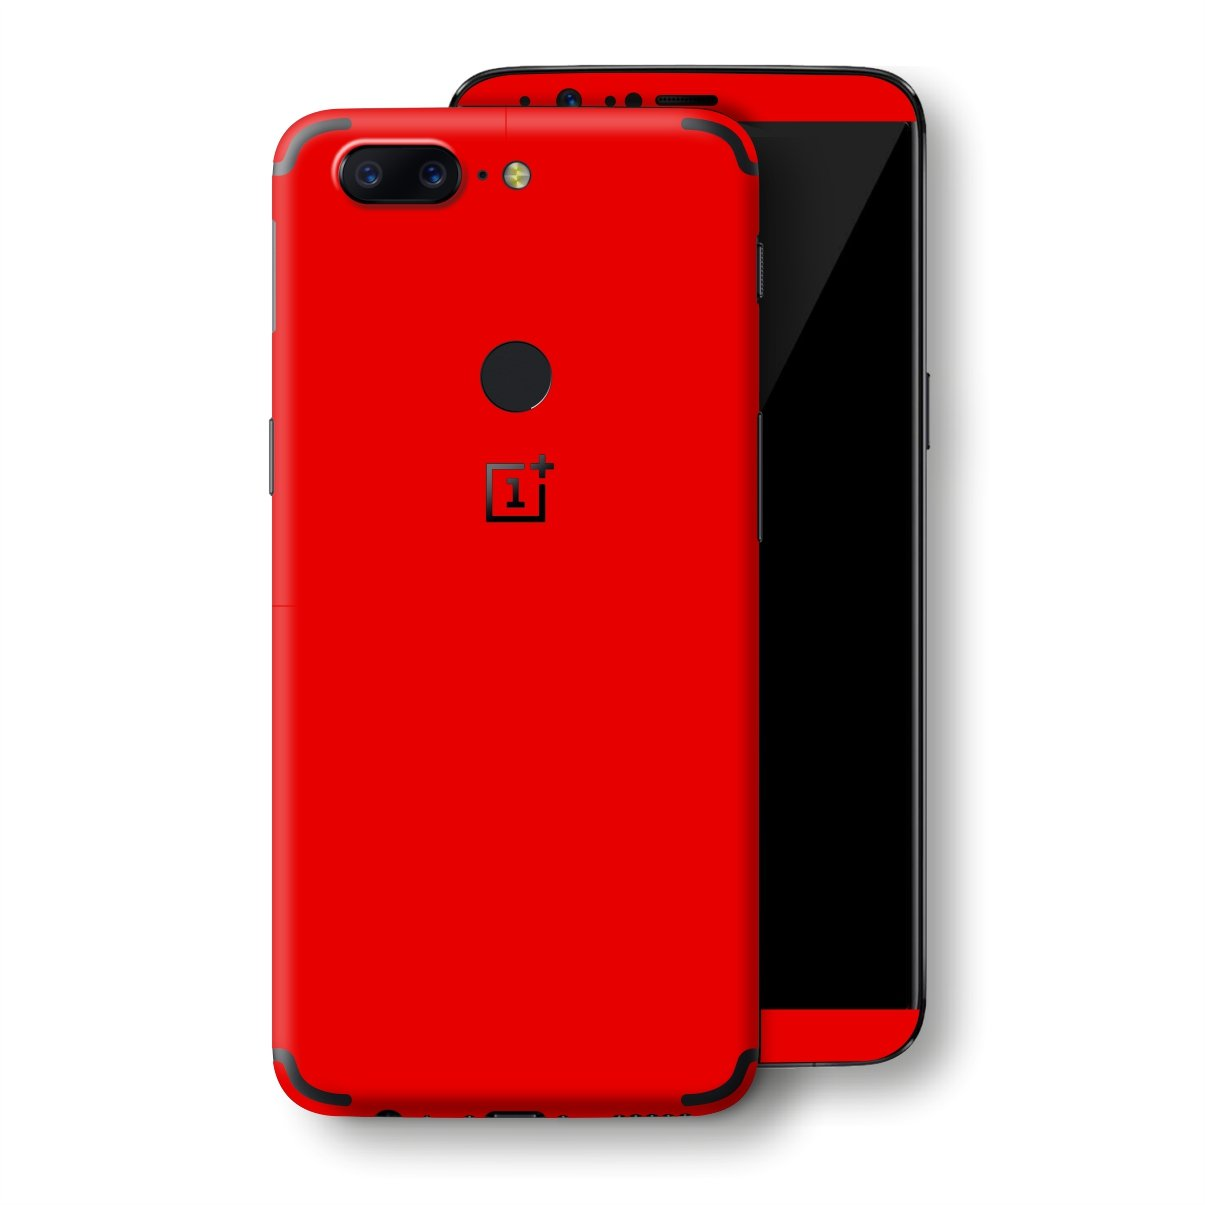 Google Pixel 2 Red Matt Skin, Decal, Wrap, Protector, Cover by EasySkinz | EasySkinz.com